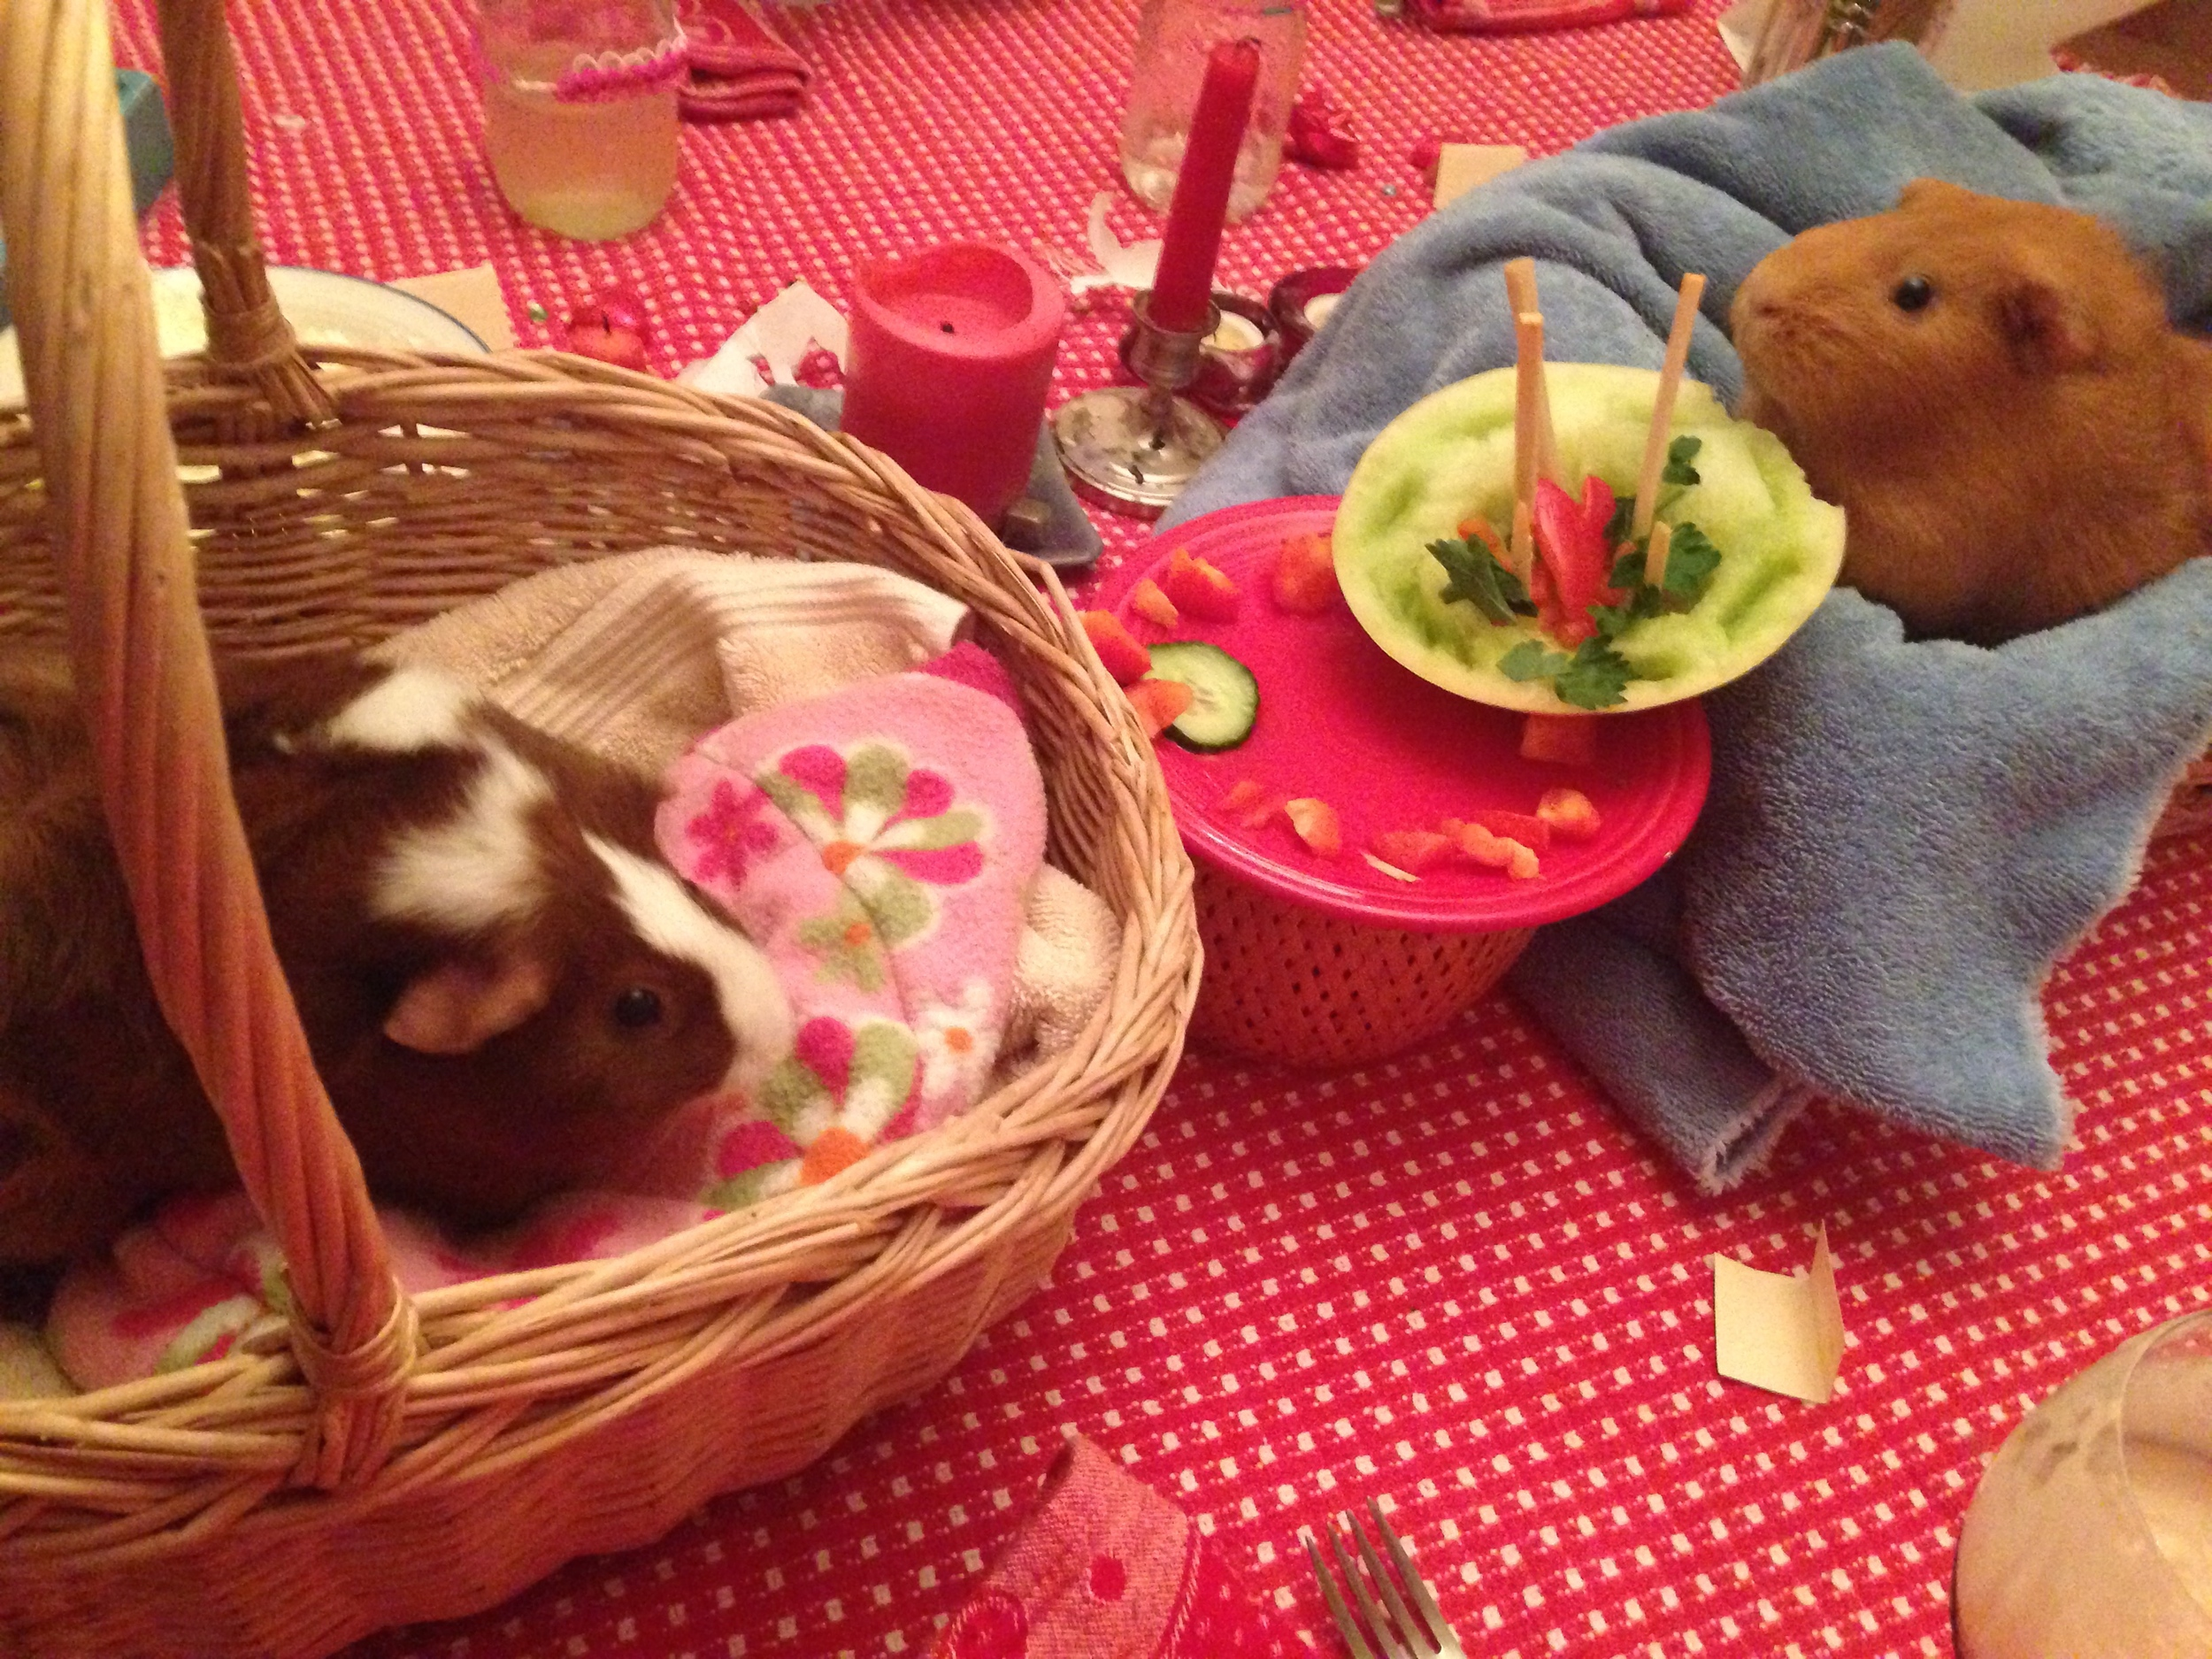 For those of you wondering about how the animals are doing this winter... Bud-Bud and Boo just celebrated a birthday. See them enjoying their veggie-cake with gusto.